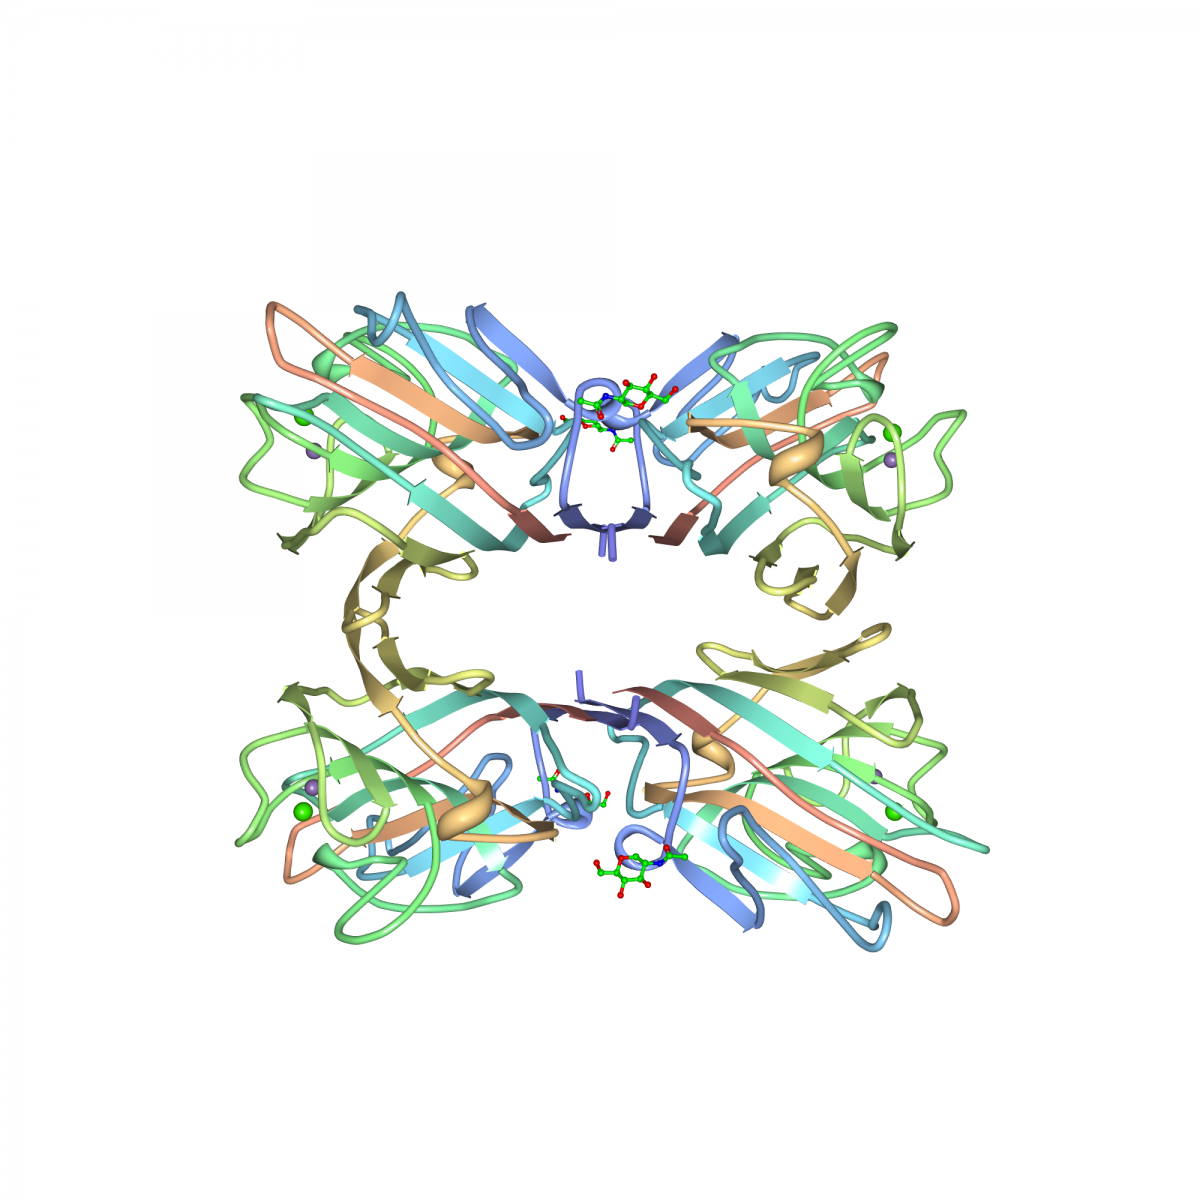 Crystal structure of PHA-L